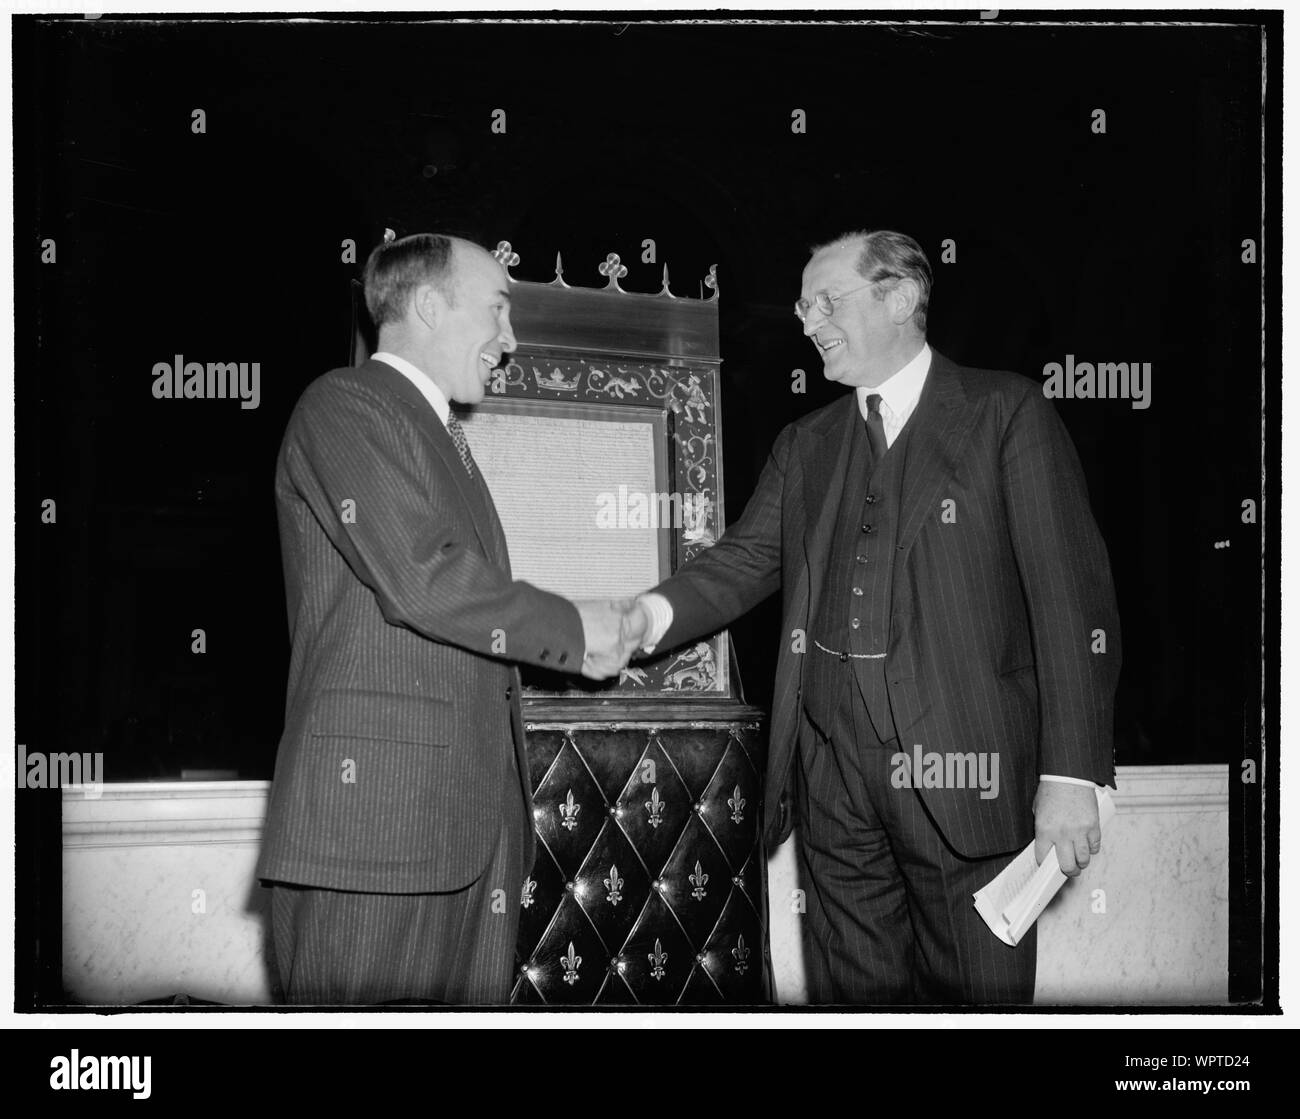 Magna Carta deposited in Congressional Library for duration of war. Washington, D.C., Nov. 28. The most cherished existing copy of the Magna Carta was today deposited in the Congressional Library here for the duration of the war by British Ambassador Lord Lothian. Librarian Archibald MacLeish, left, is shown thanking Lord Lothian after accepting the document which can be seen in the background. The Magna Carta will be on display for the public in a spot opposite the Declaration of Independence and the Constitution Stock Photo